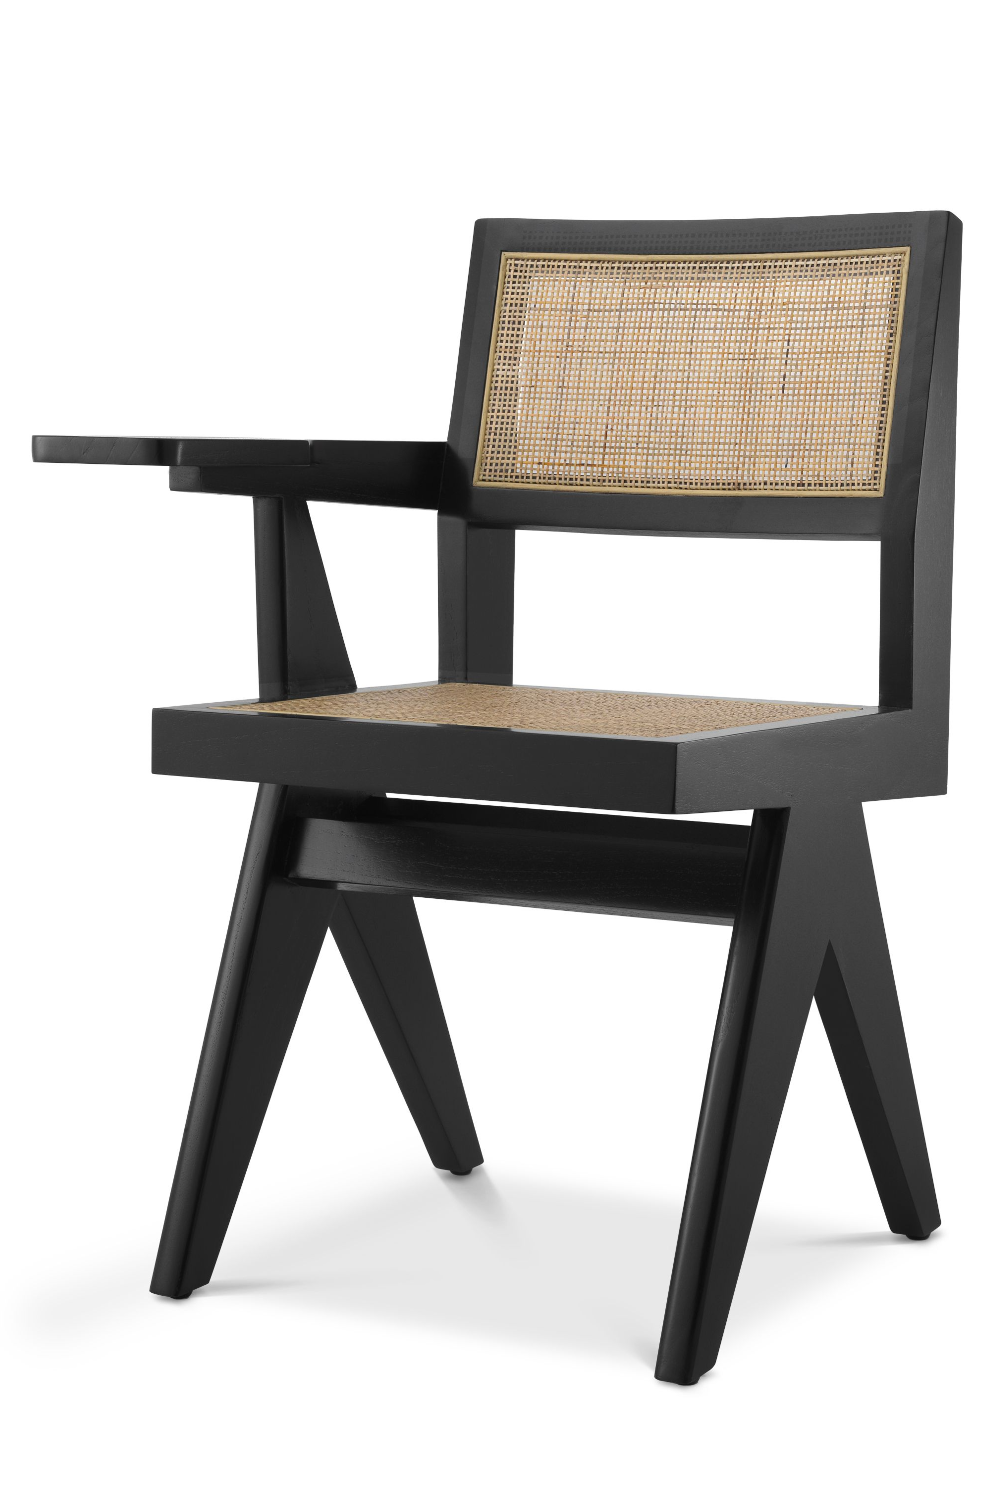 Black Rattan Chair with Desk | Eichholtz Niclas | Woodfurniture.com